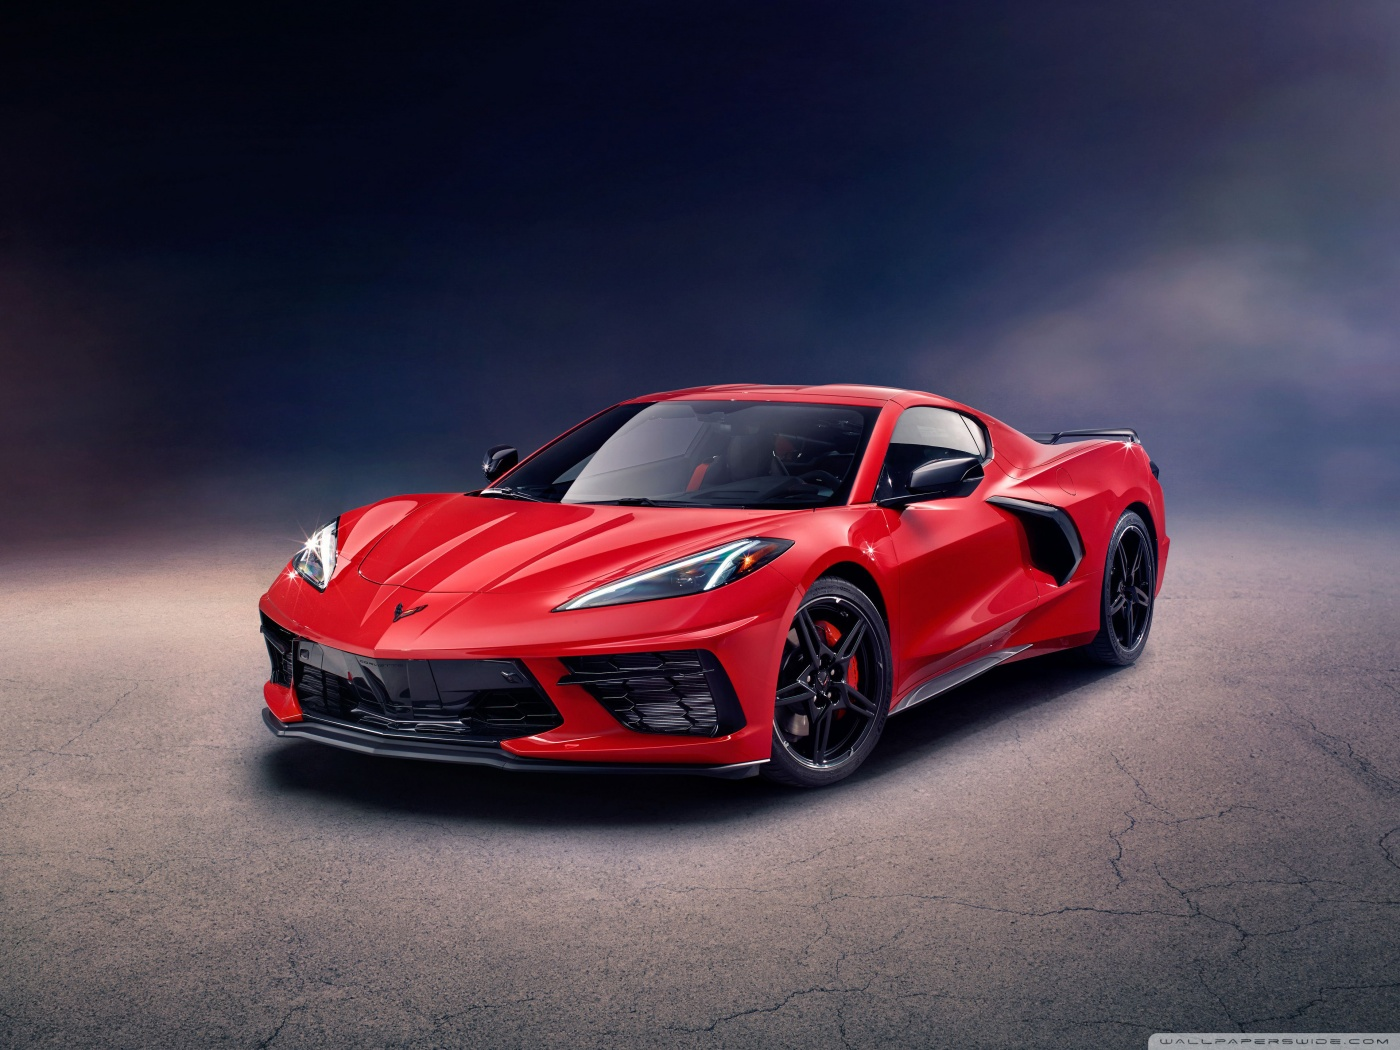 download 2020 Chevrolet Corvette Stingray Z51 Supercar 4K HD 1400x1050